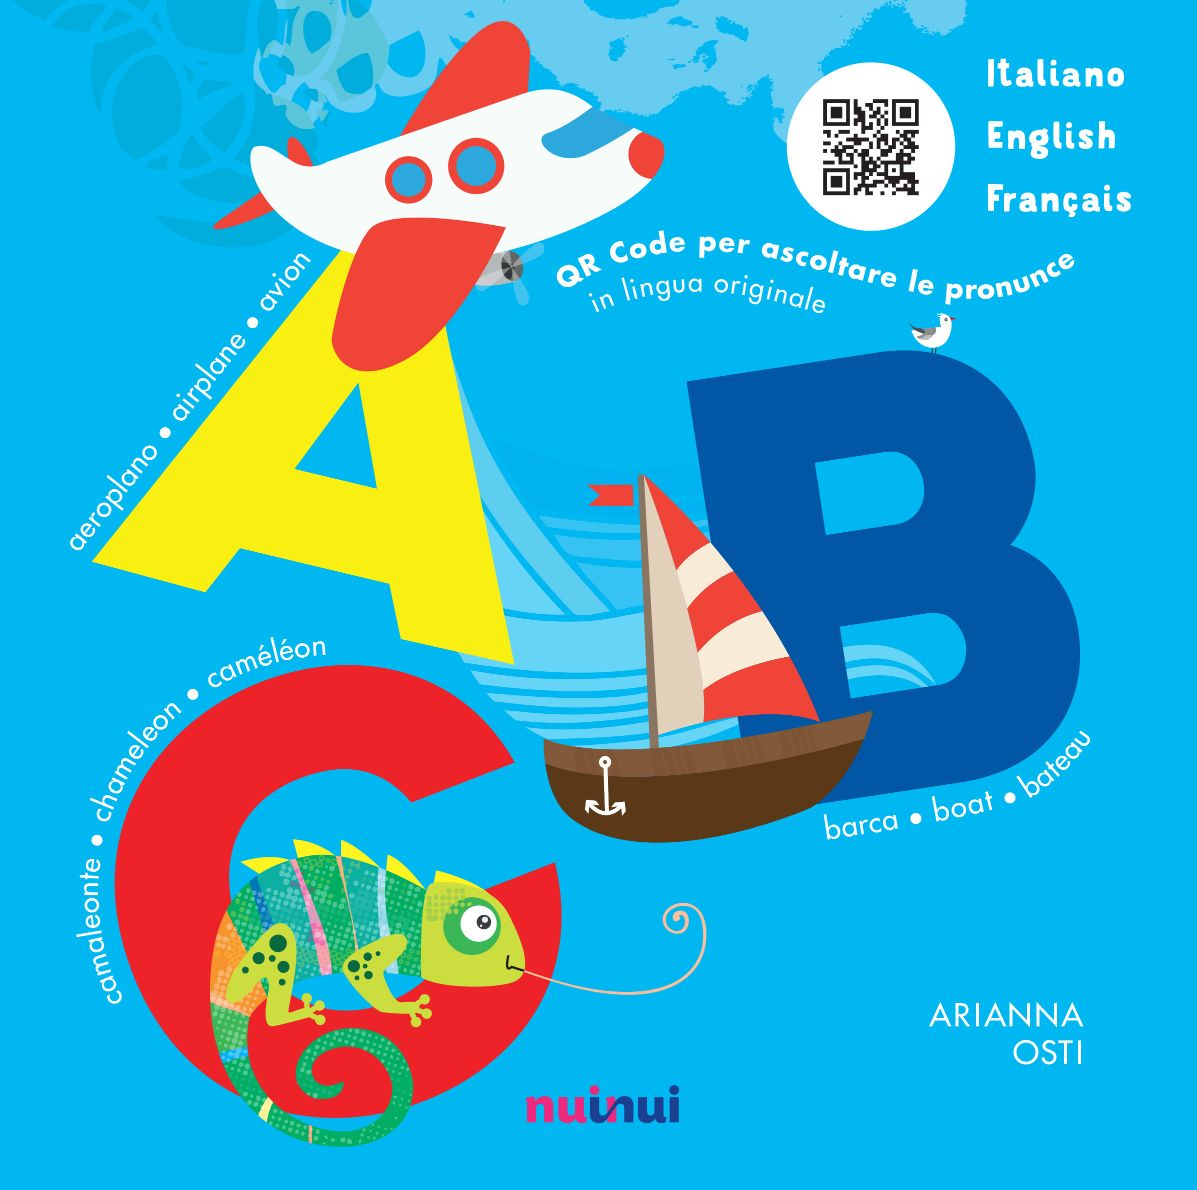 ABC - Italiano, English, Français